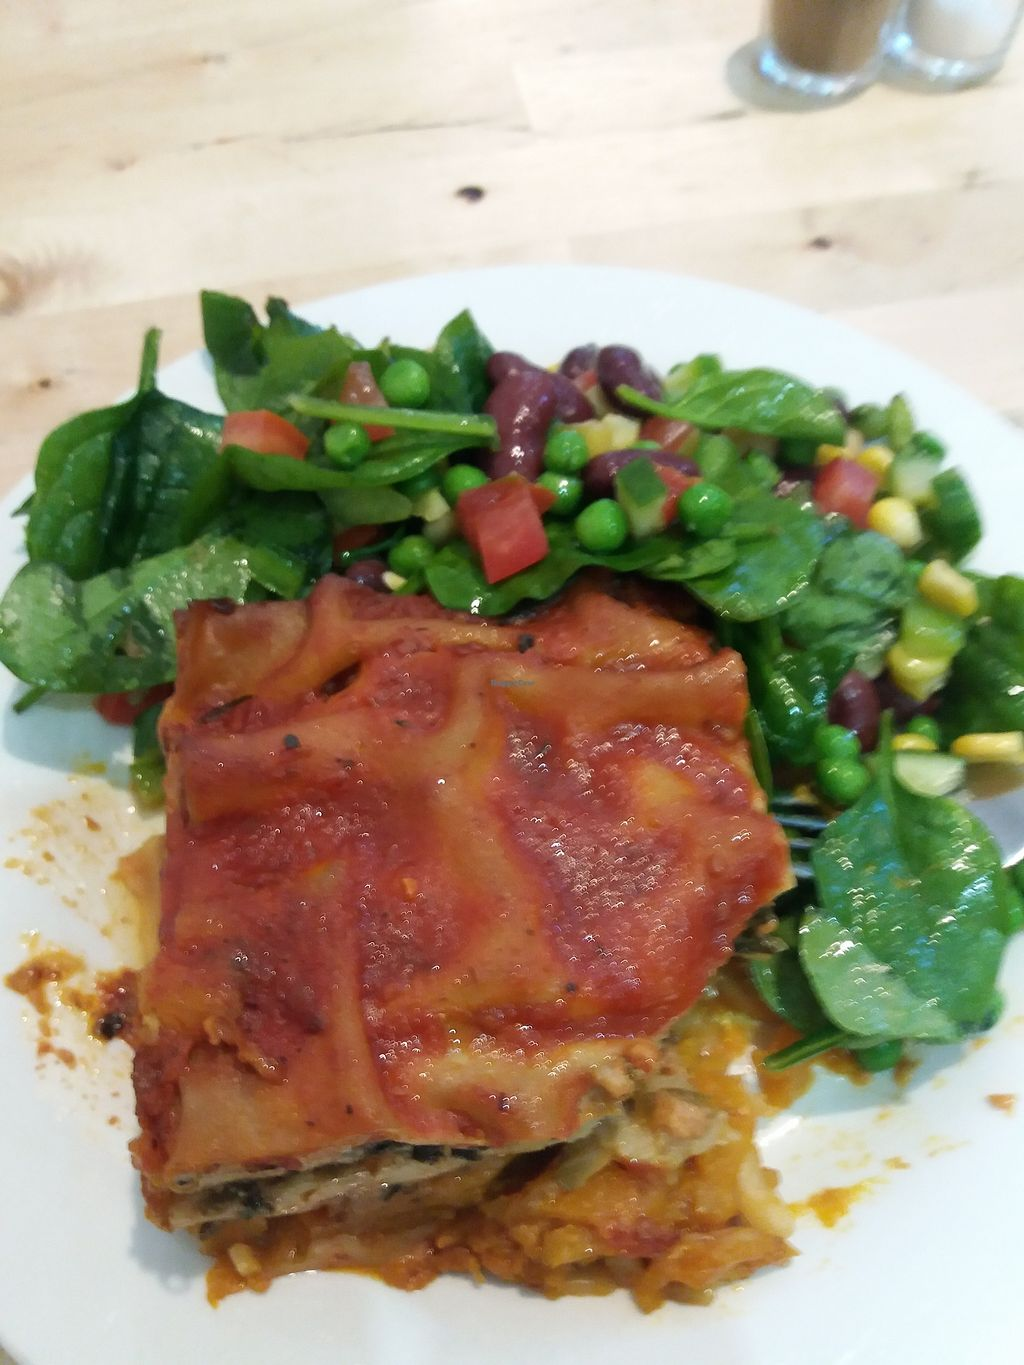 """Photo of Hari's Vegetarian  by <a href=""""/members/profile/veganvirtues"""">veganvirtues</a> <br/>Veggie lasagne <br/> July 11, 2017  - <a href='/contact/abuse/image/32555/279002'>Report</a>"""